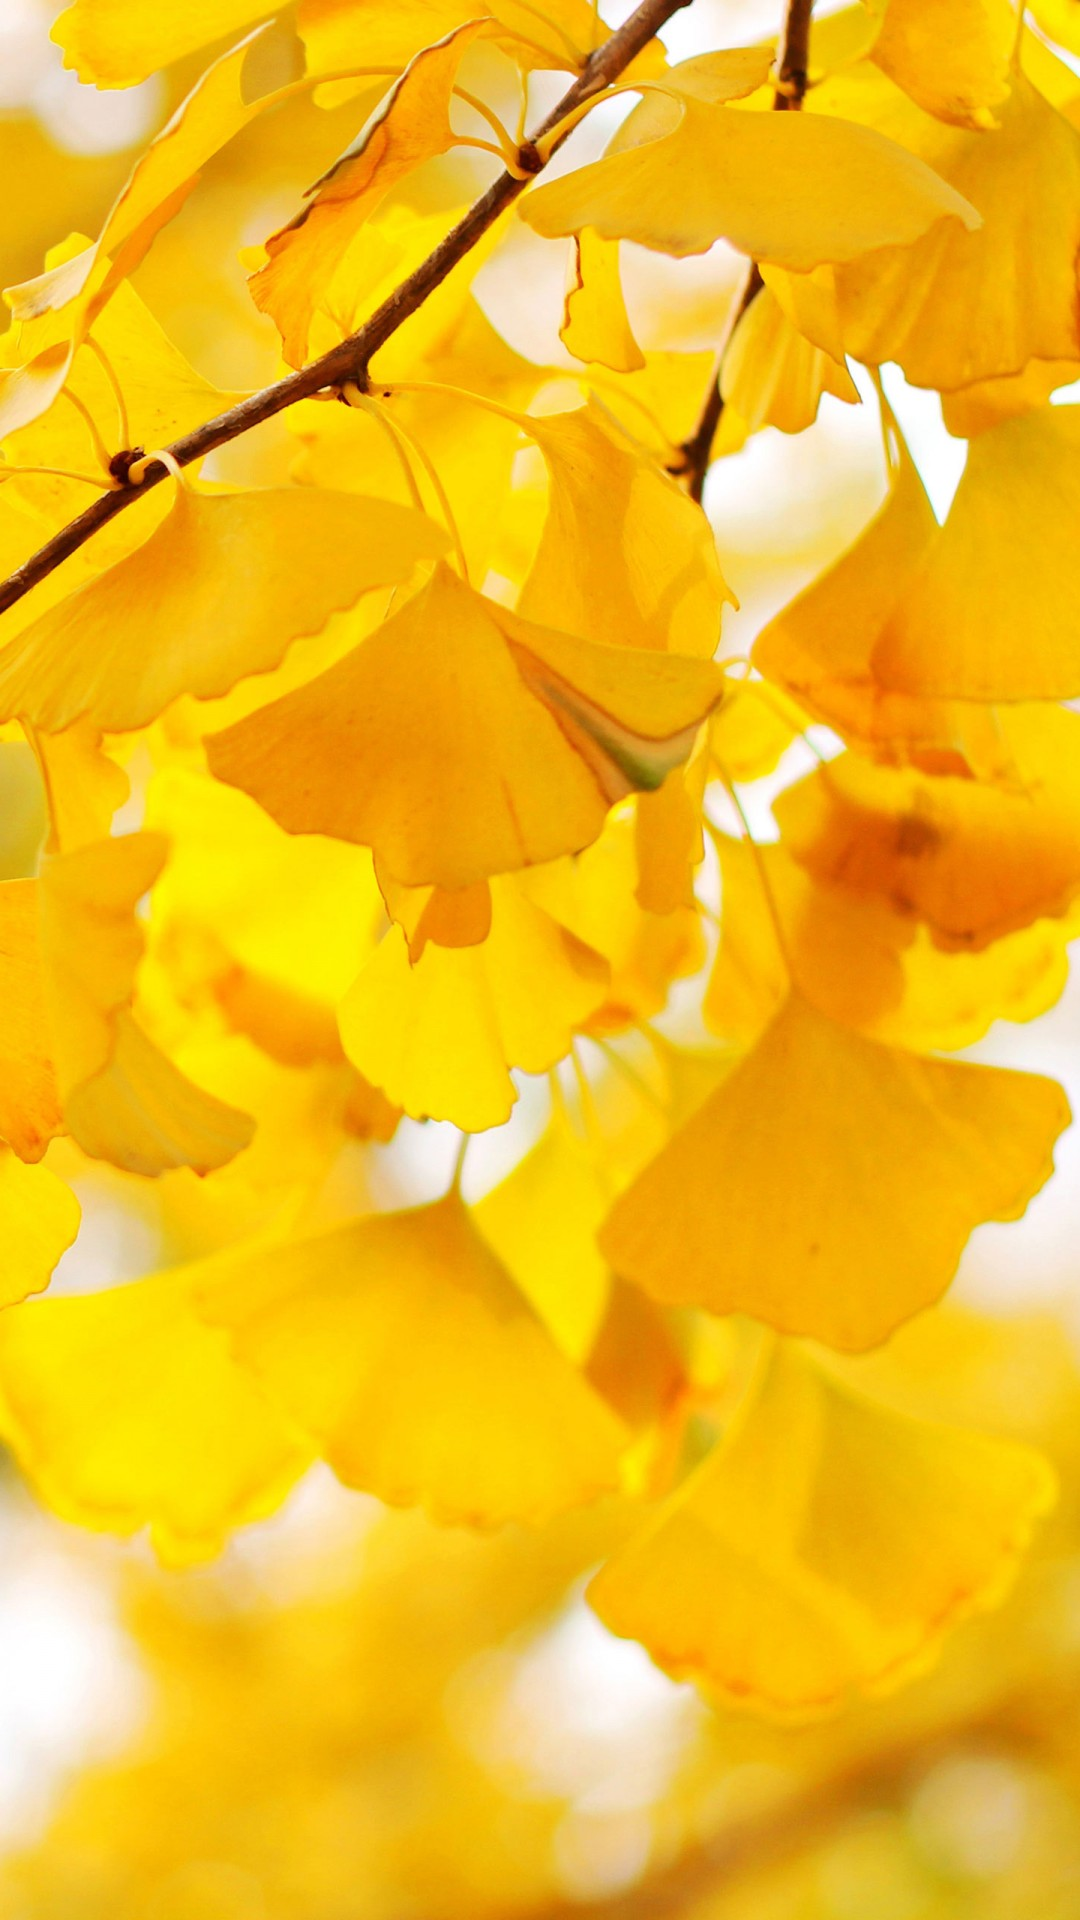 Free Fall Wallpaper For Iphone 6 Ginkgo Biloba Iphone 6 6 Plus And Iphone 5 4 Wallpapers